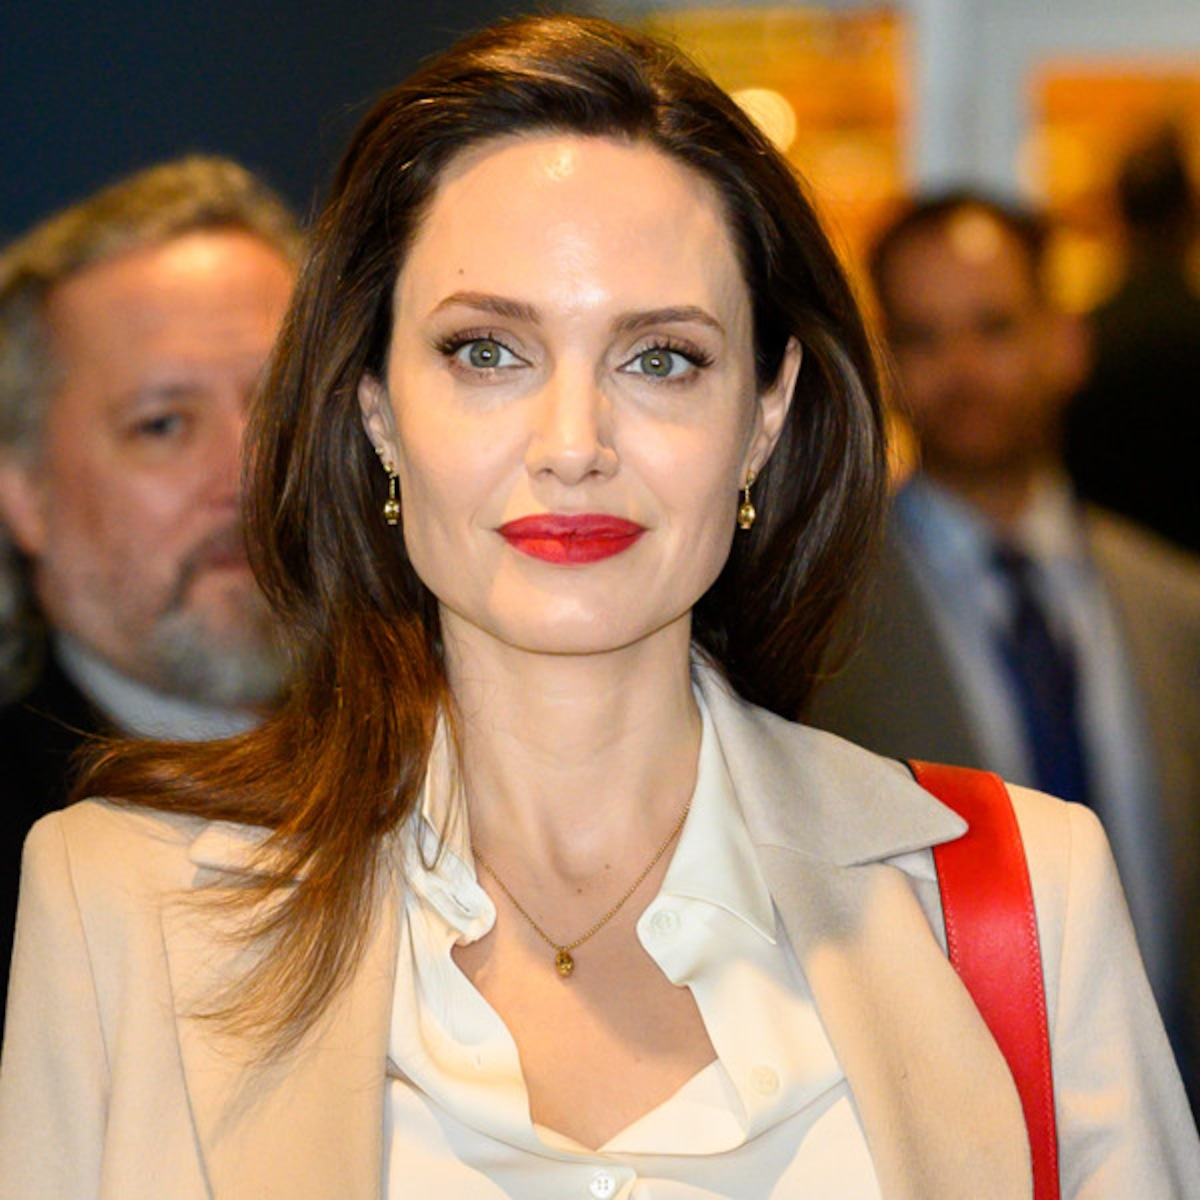 Angelina Jolie Video Hard angelina jolie makes surprise appearance at comic-con 2019